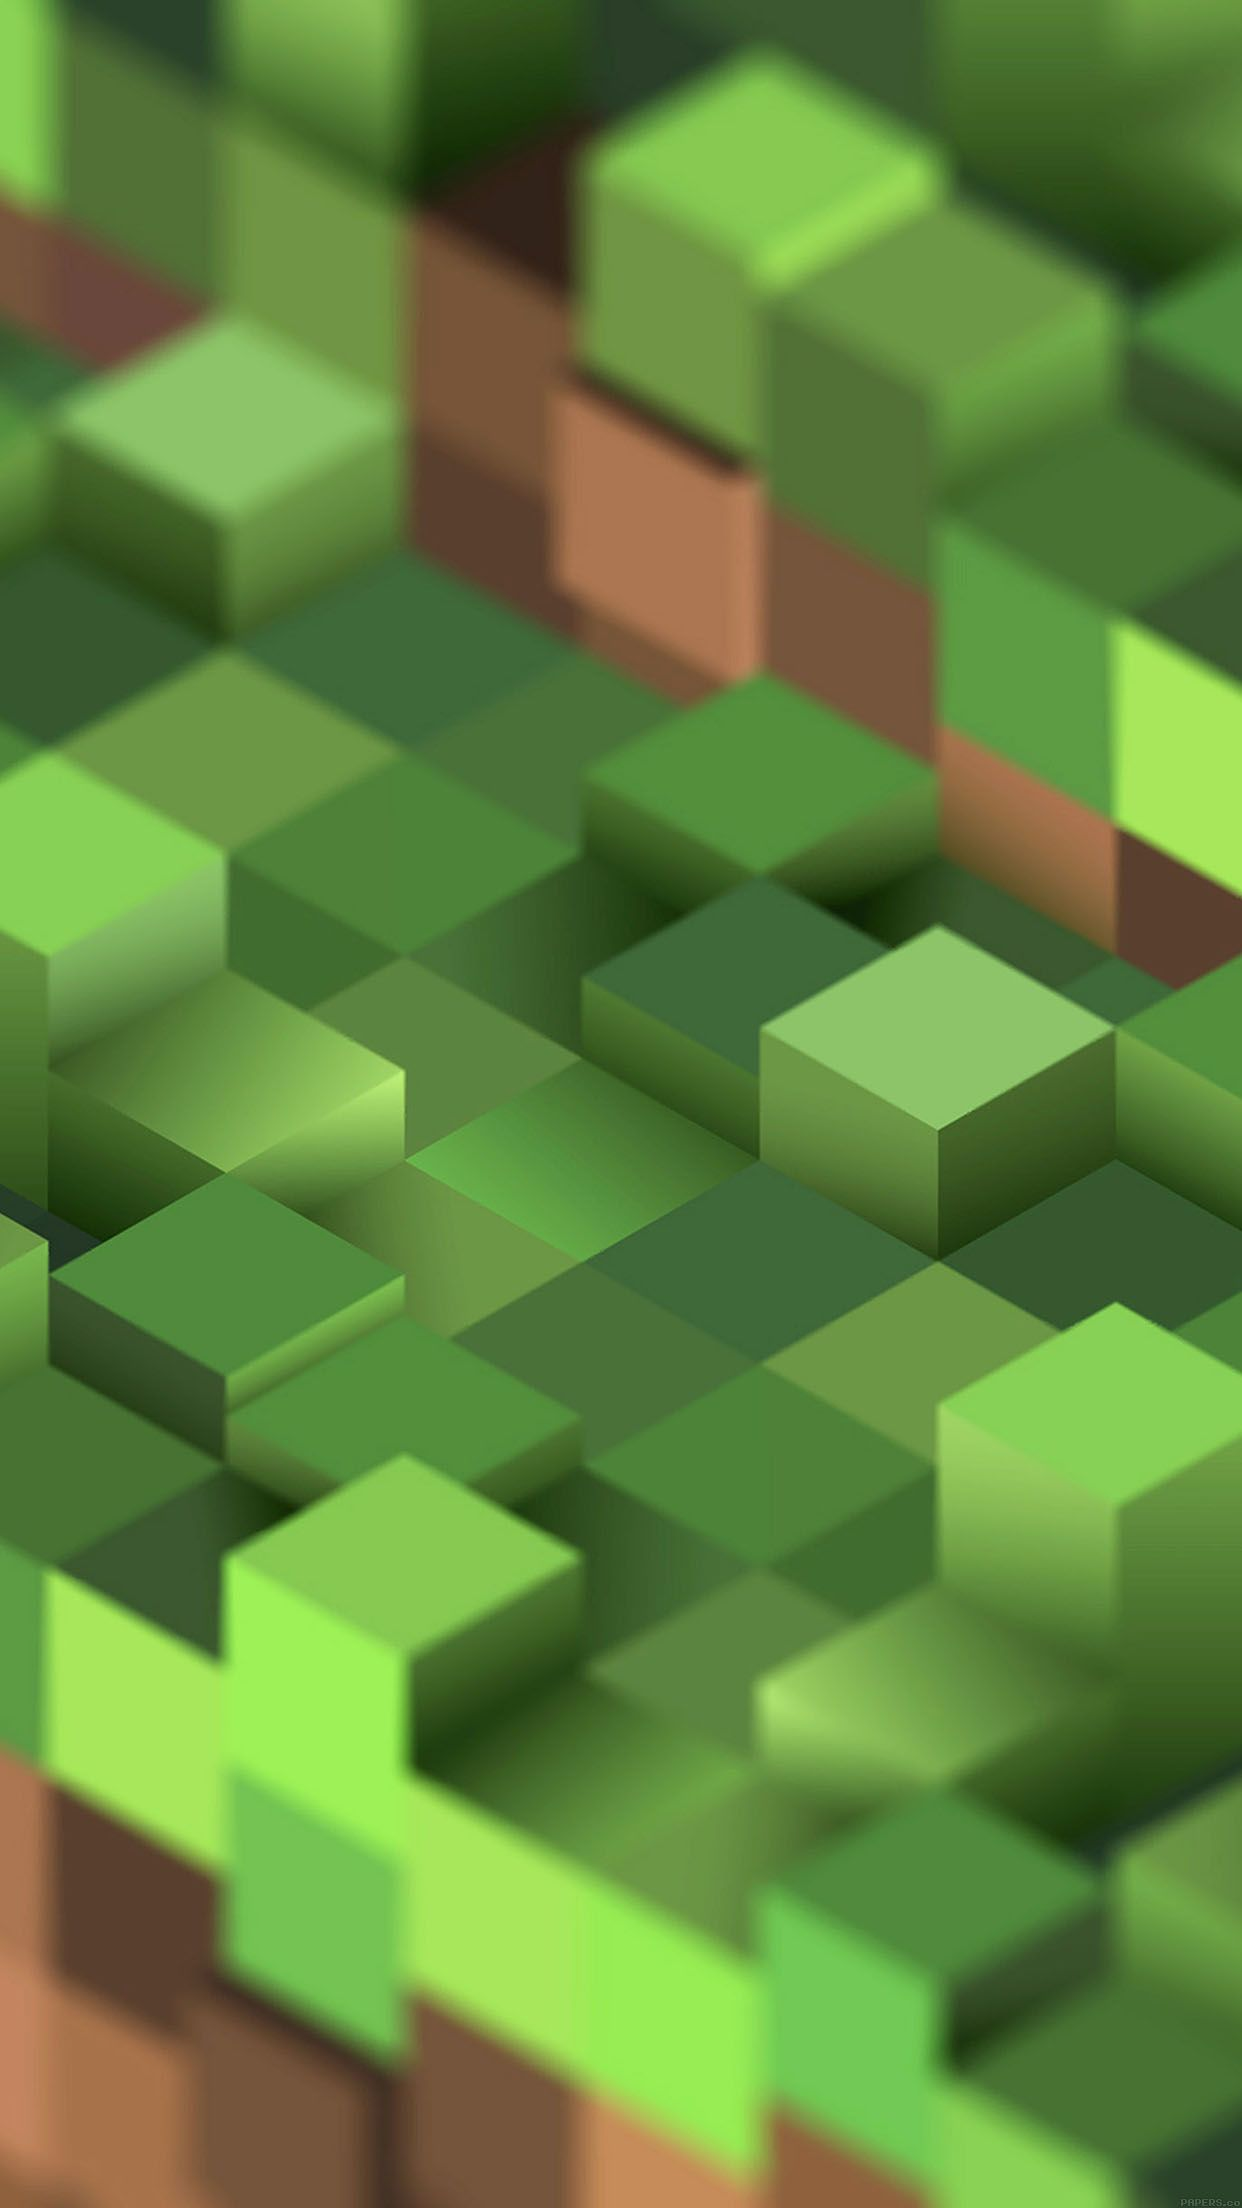 Good Wallpaper Minecraft Pattern - 252a1d63ade91f3be5784ba38720f9d8  2018_855126.jpg